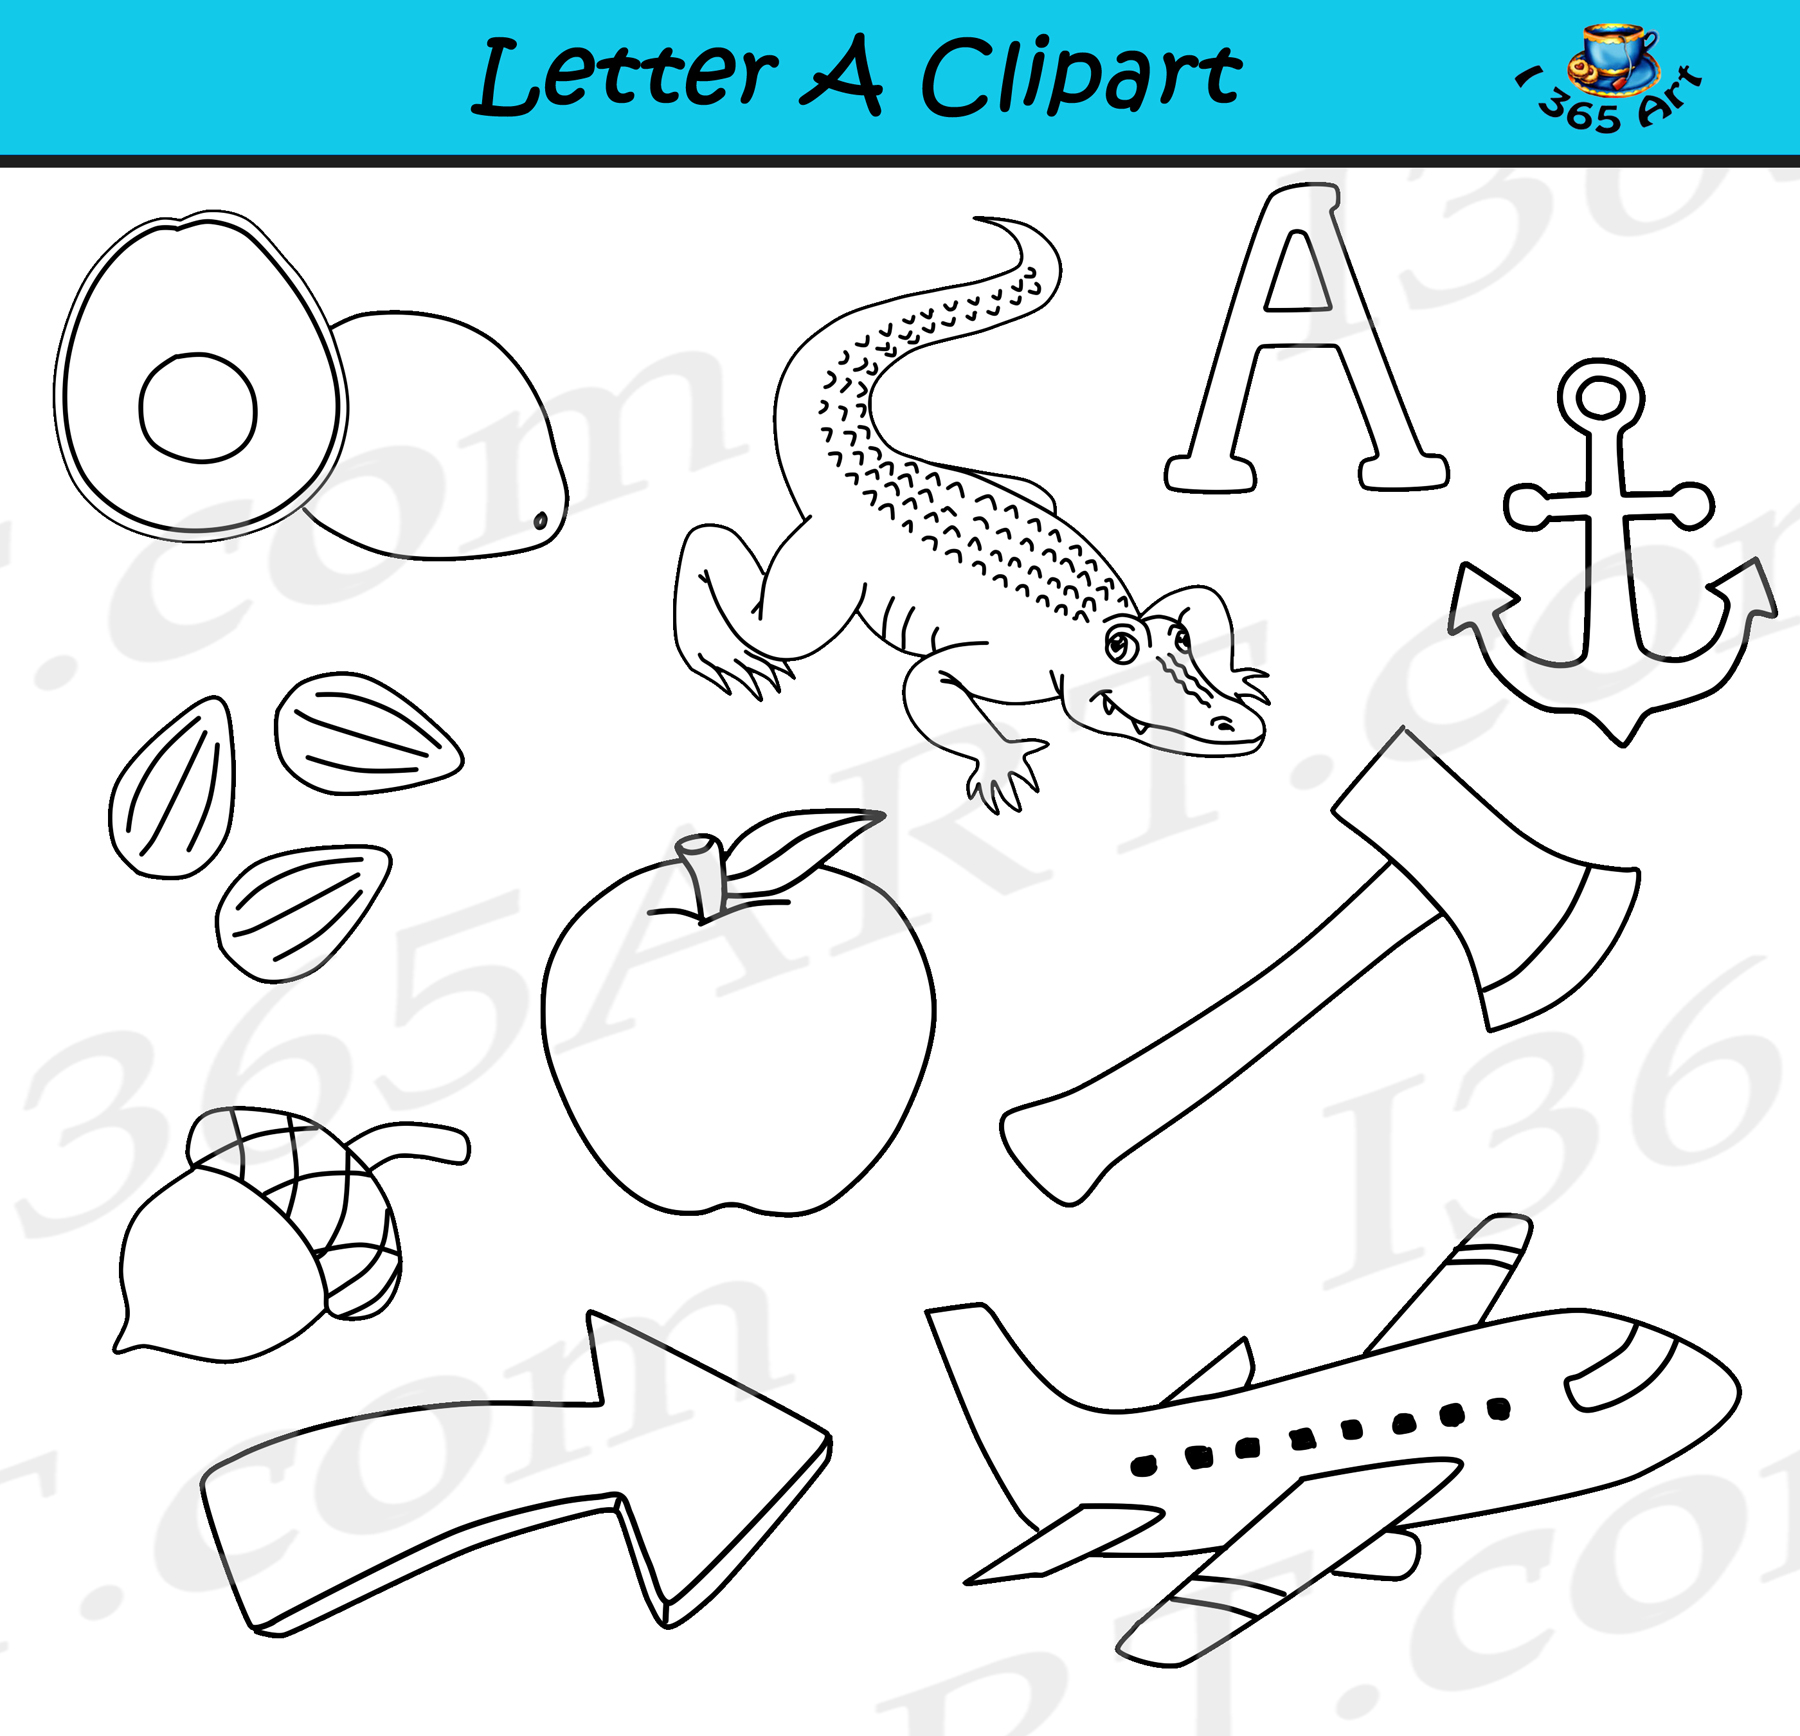 letter a objects clipart - learning the alphabets - commercial clipart